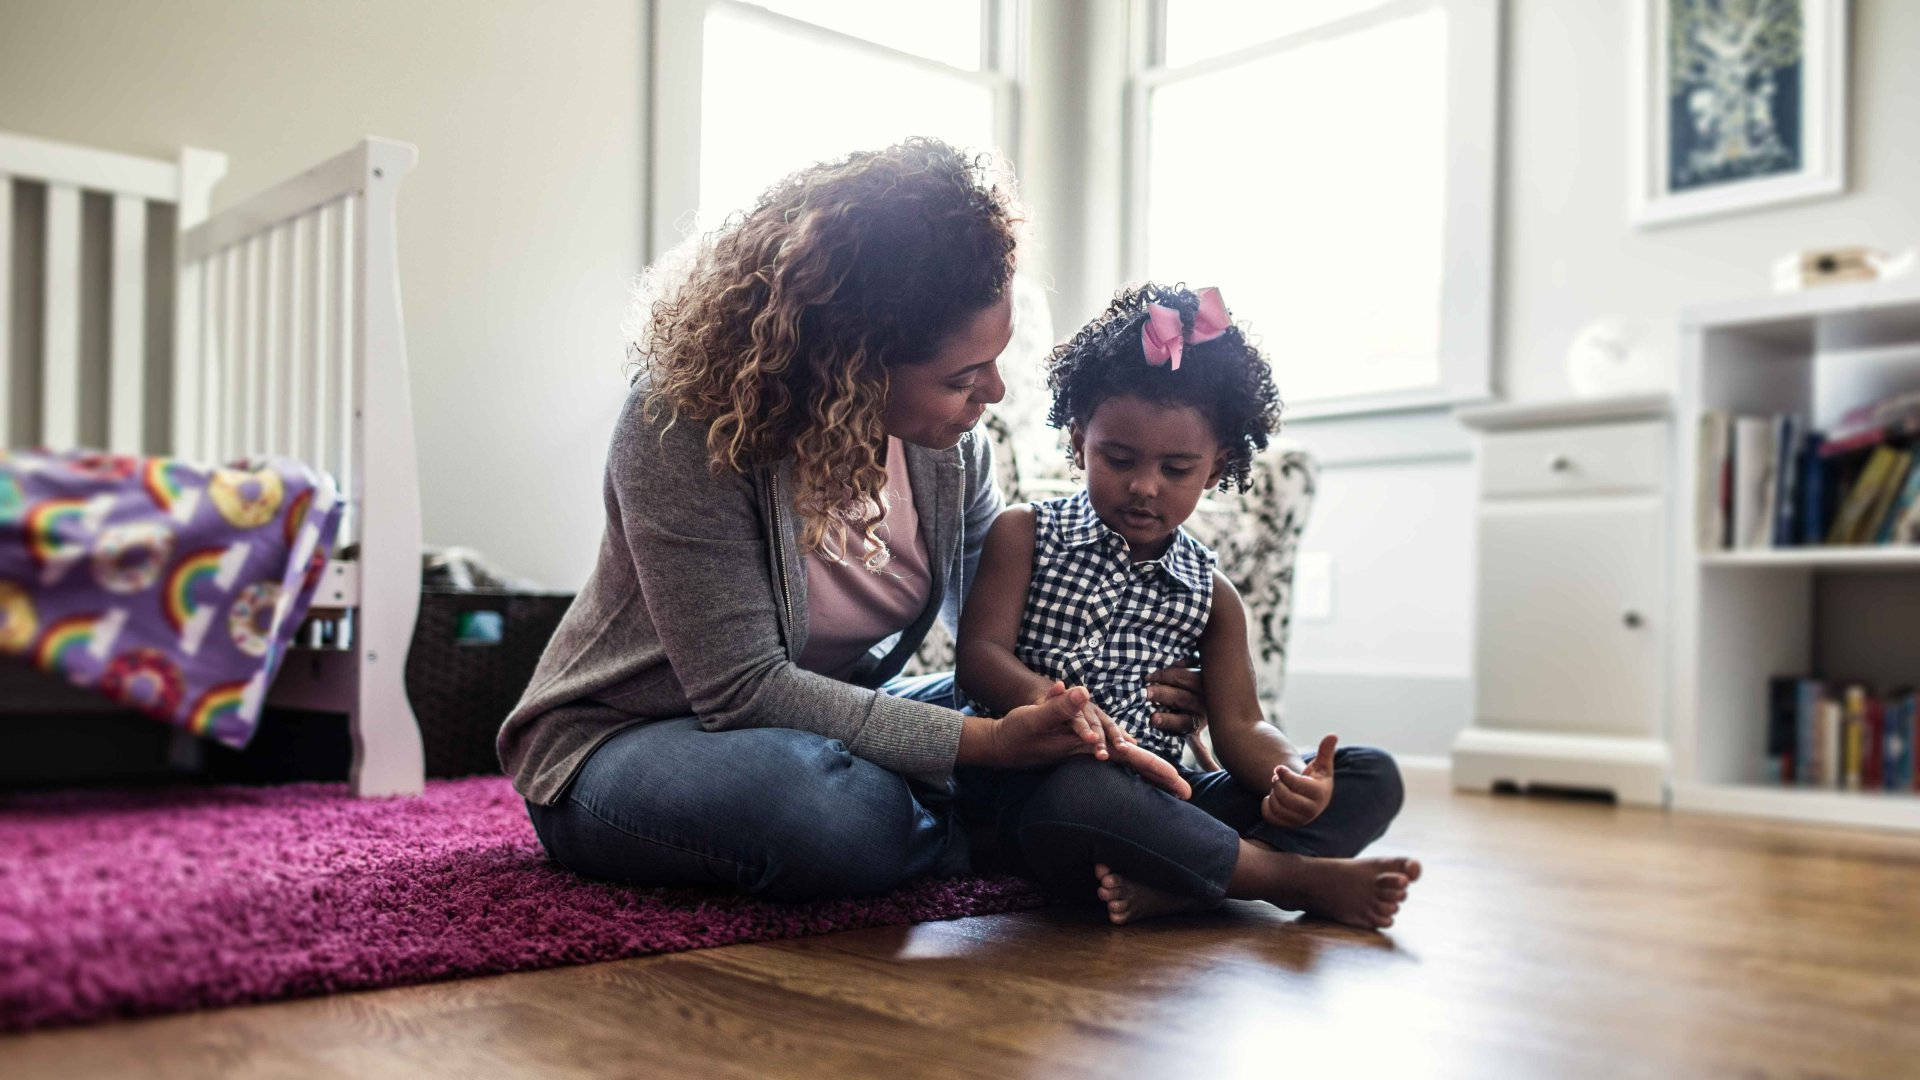 How to Use 2020 to Teach Your Children to Be More Resilient, According to Psychology